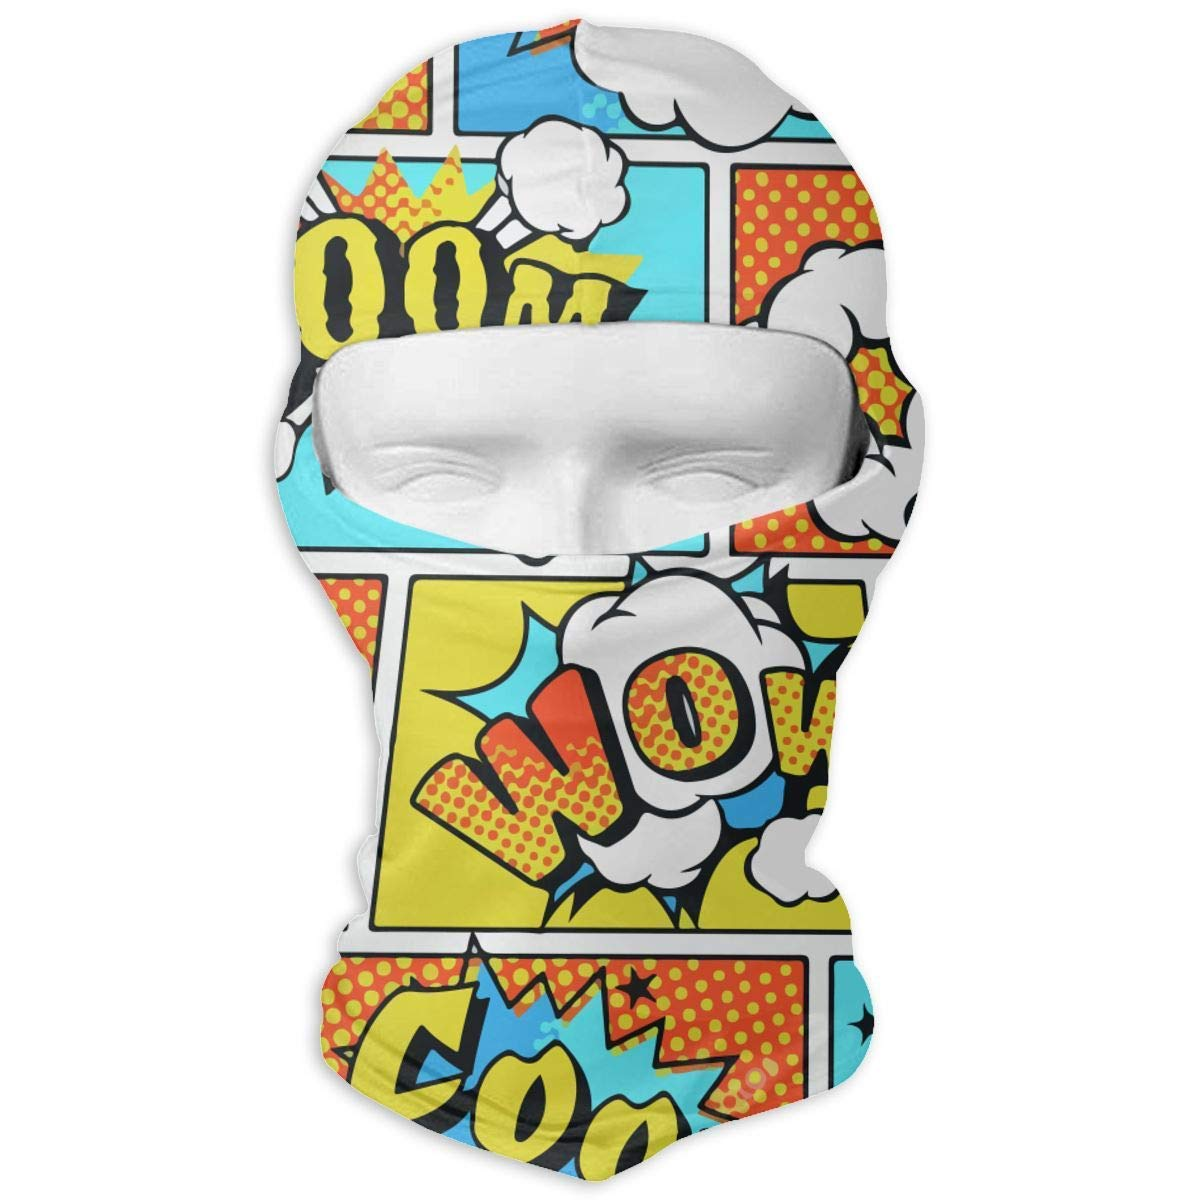 Gxdchfj Comic Style Boom Wow Windproof Dust Protection Balaclava Full Face Mask Hood Headcover